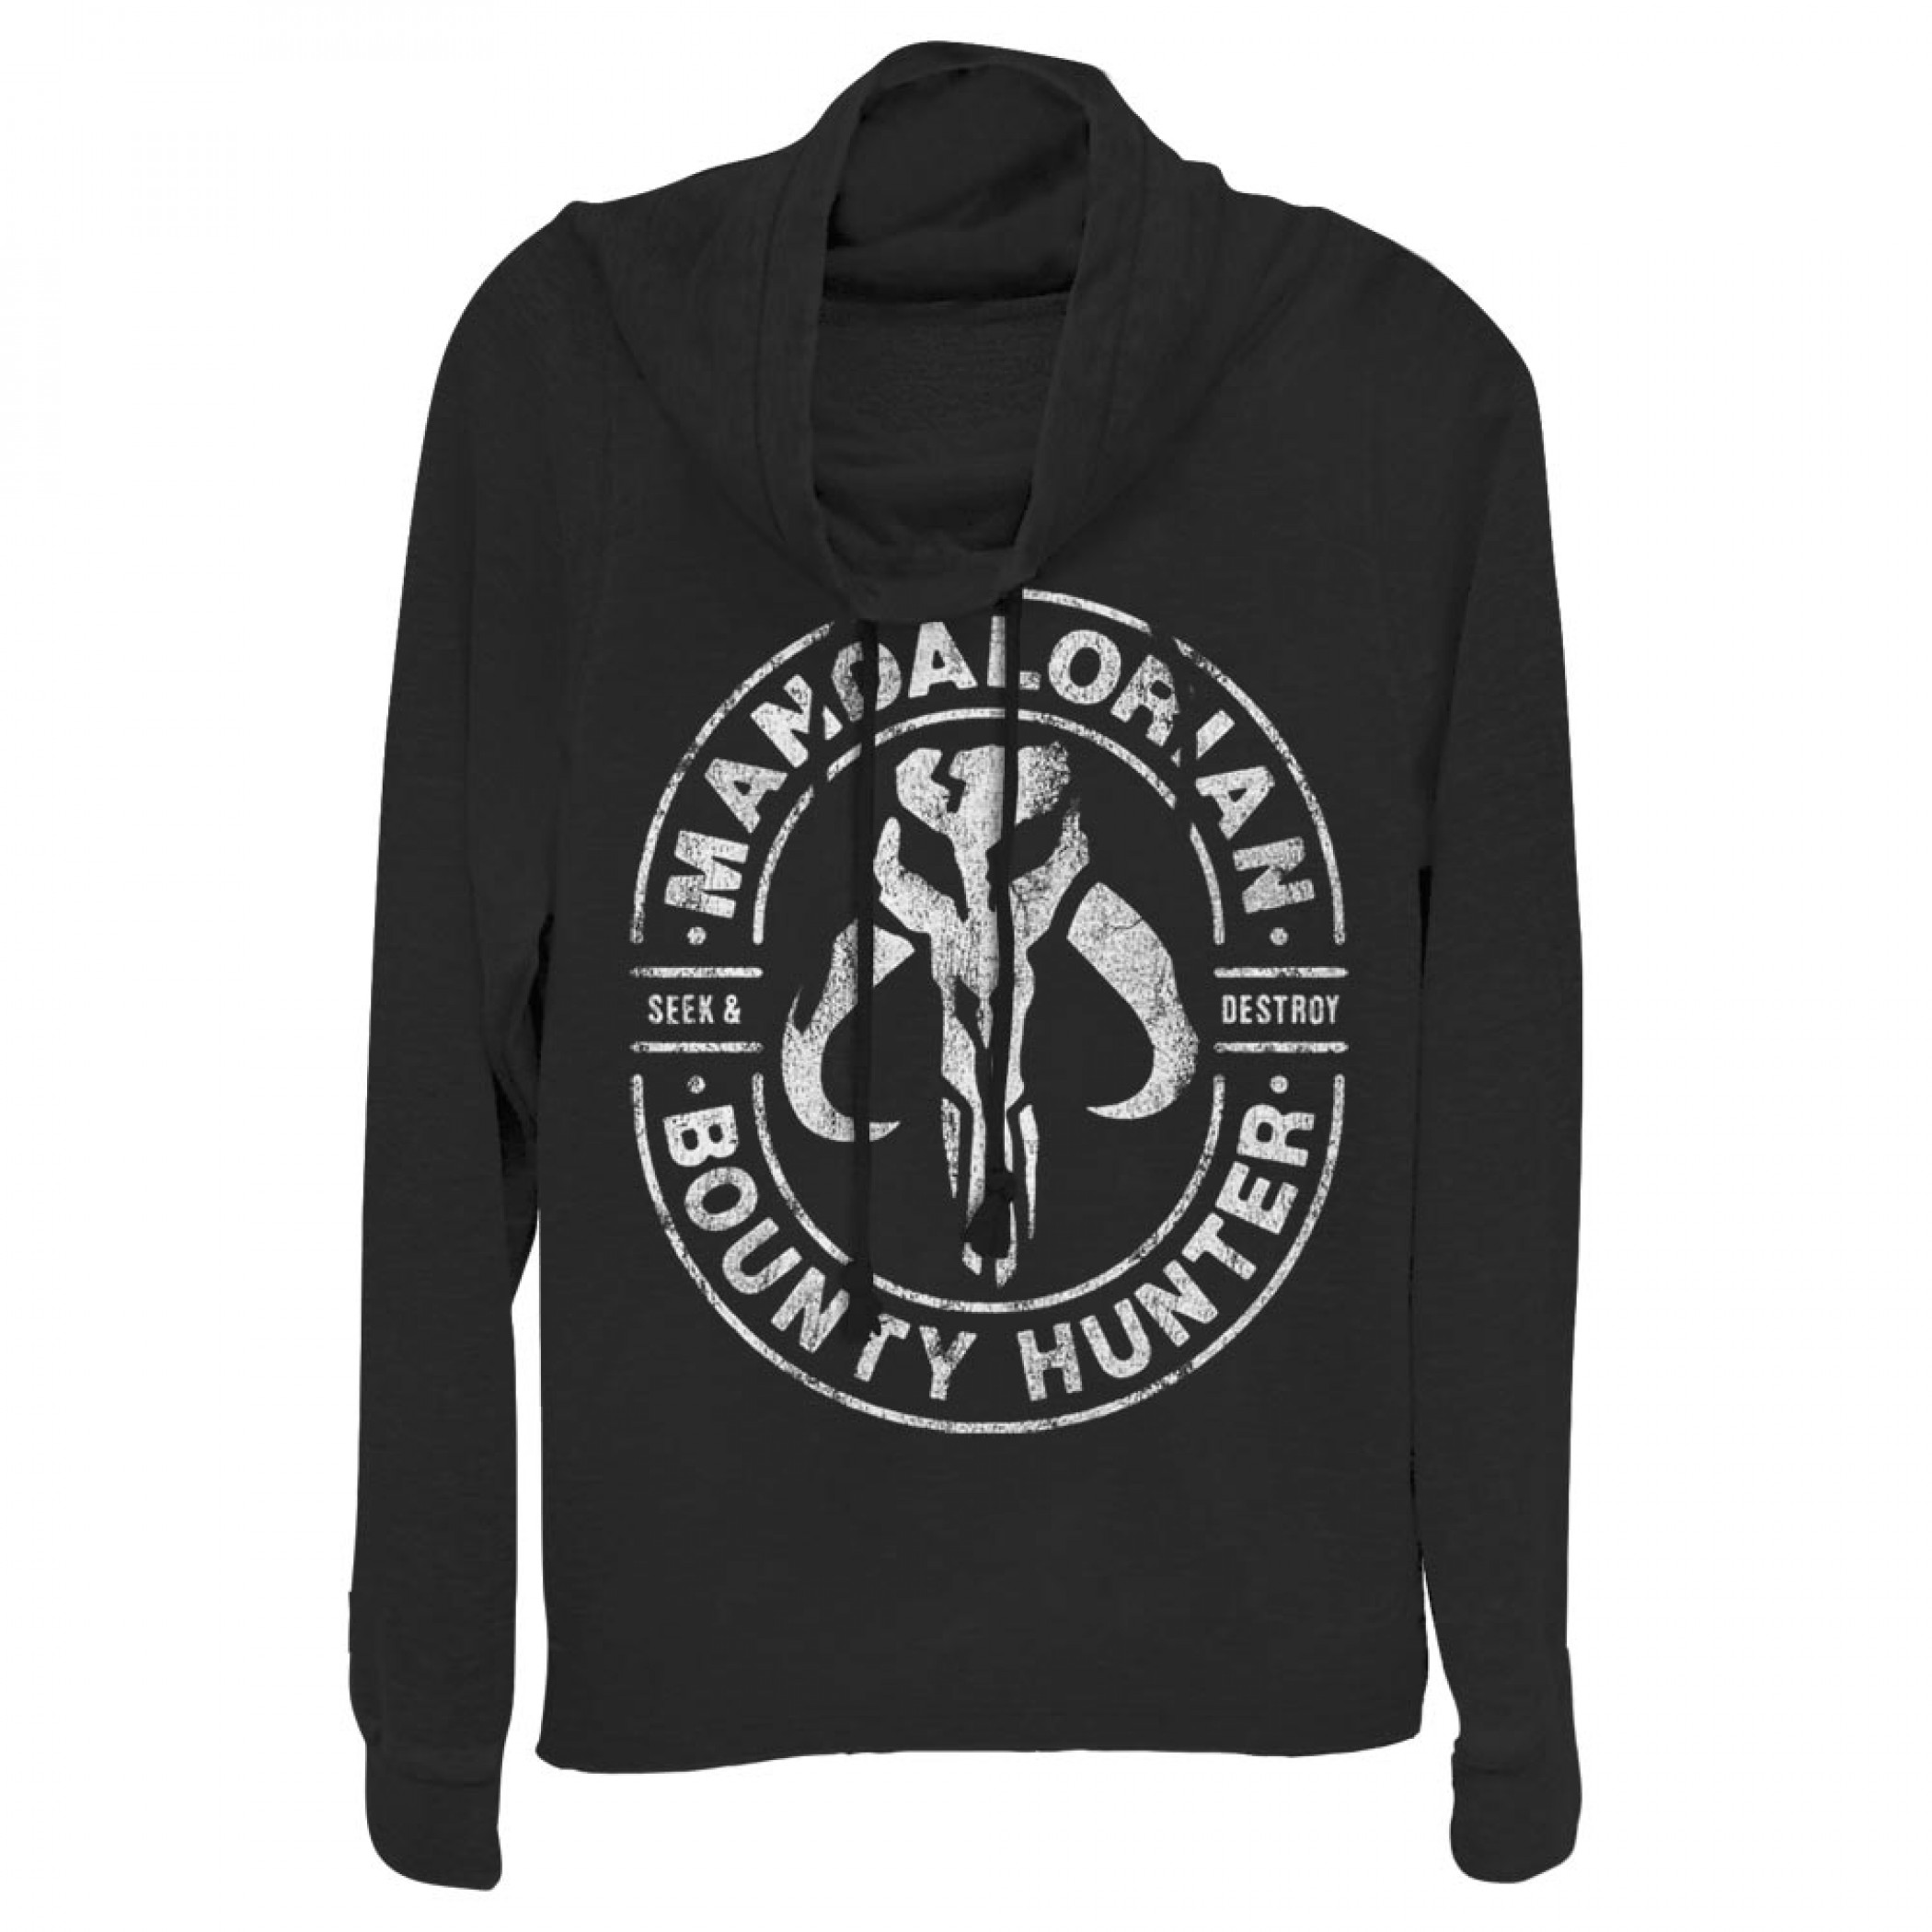 The Mandalorian Seek and Destroy Women's Cowl Neck Sweatshirt